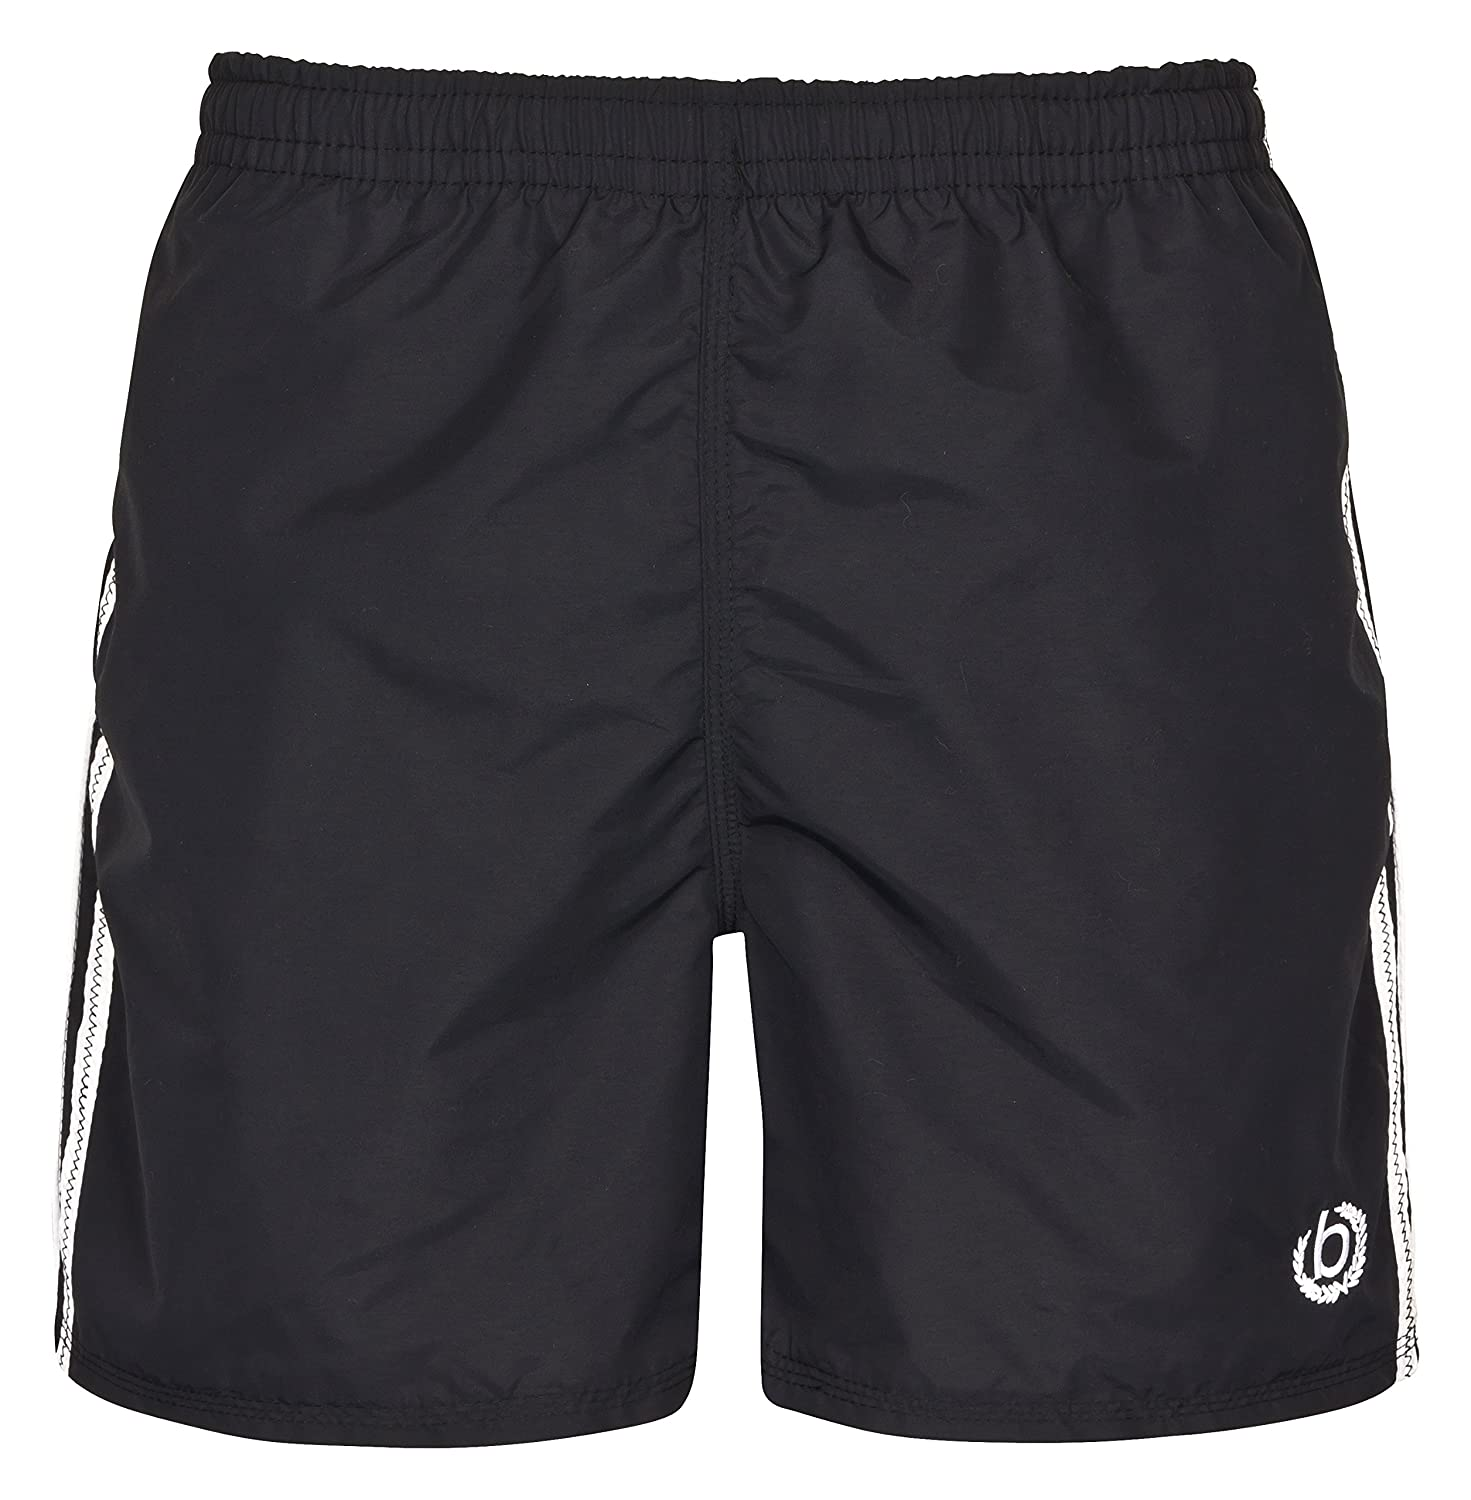 Bugatti ? - modern men's swim shorts in black with white stripes